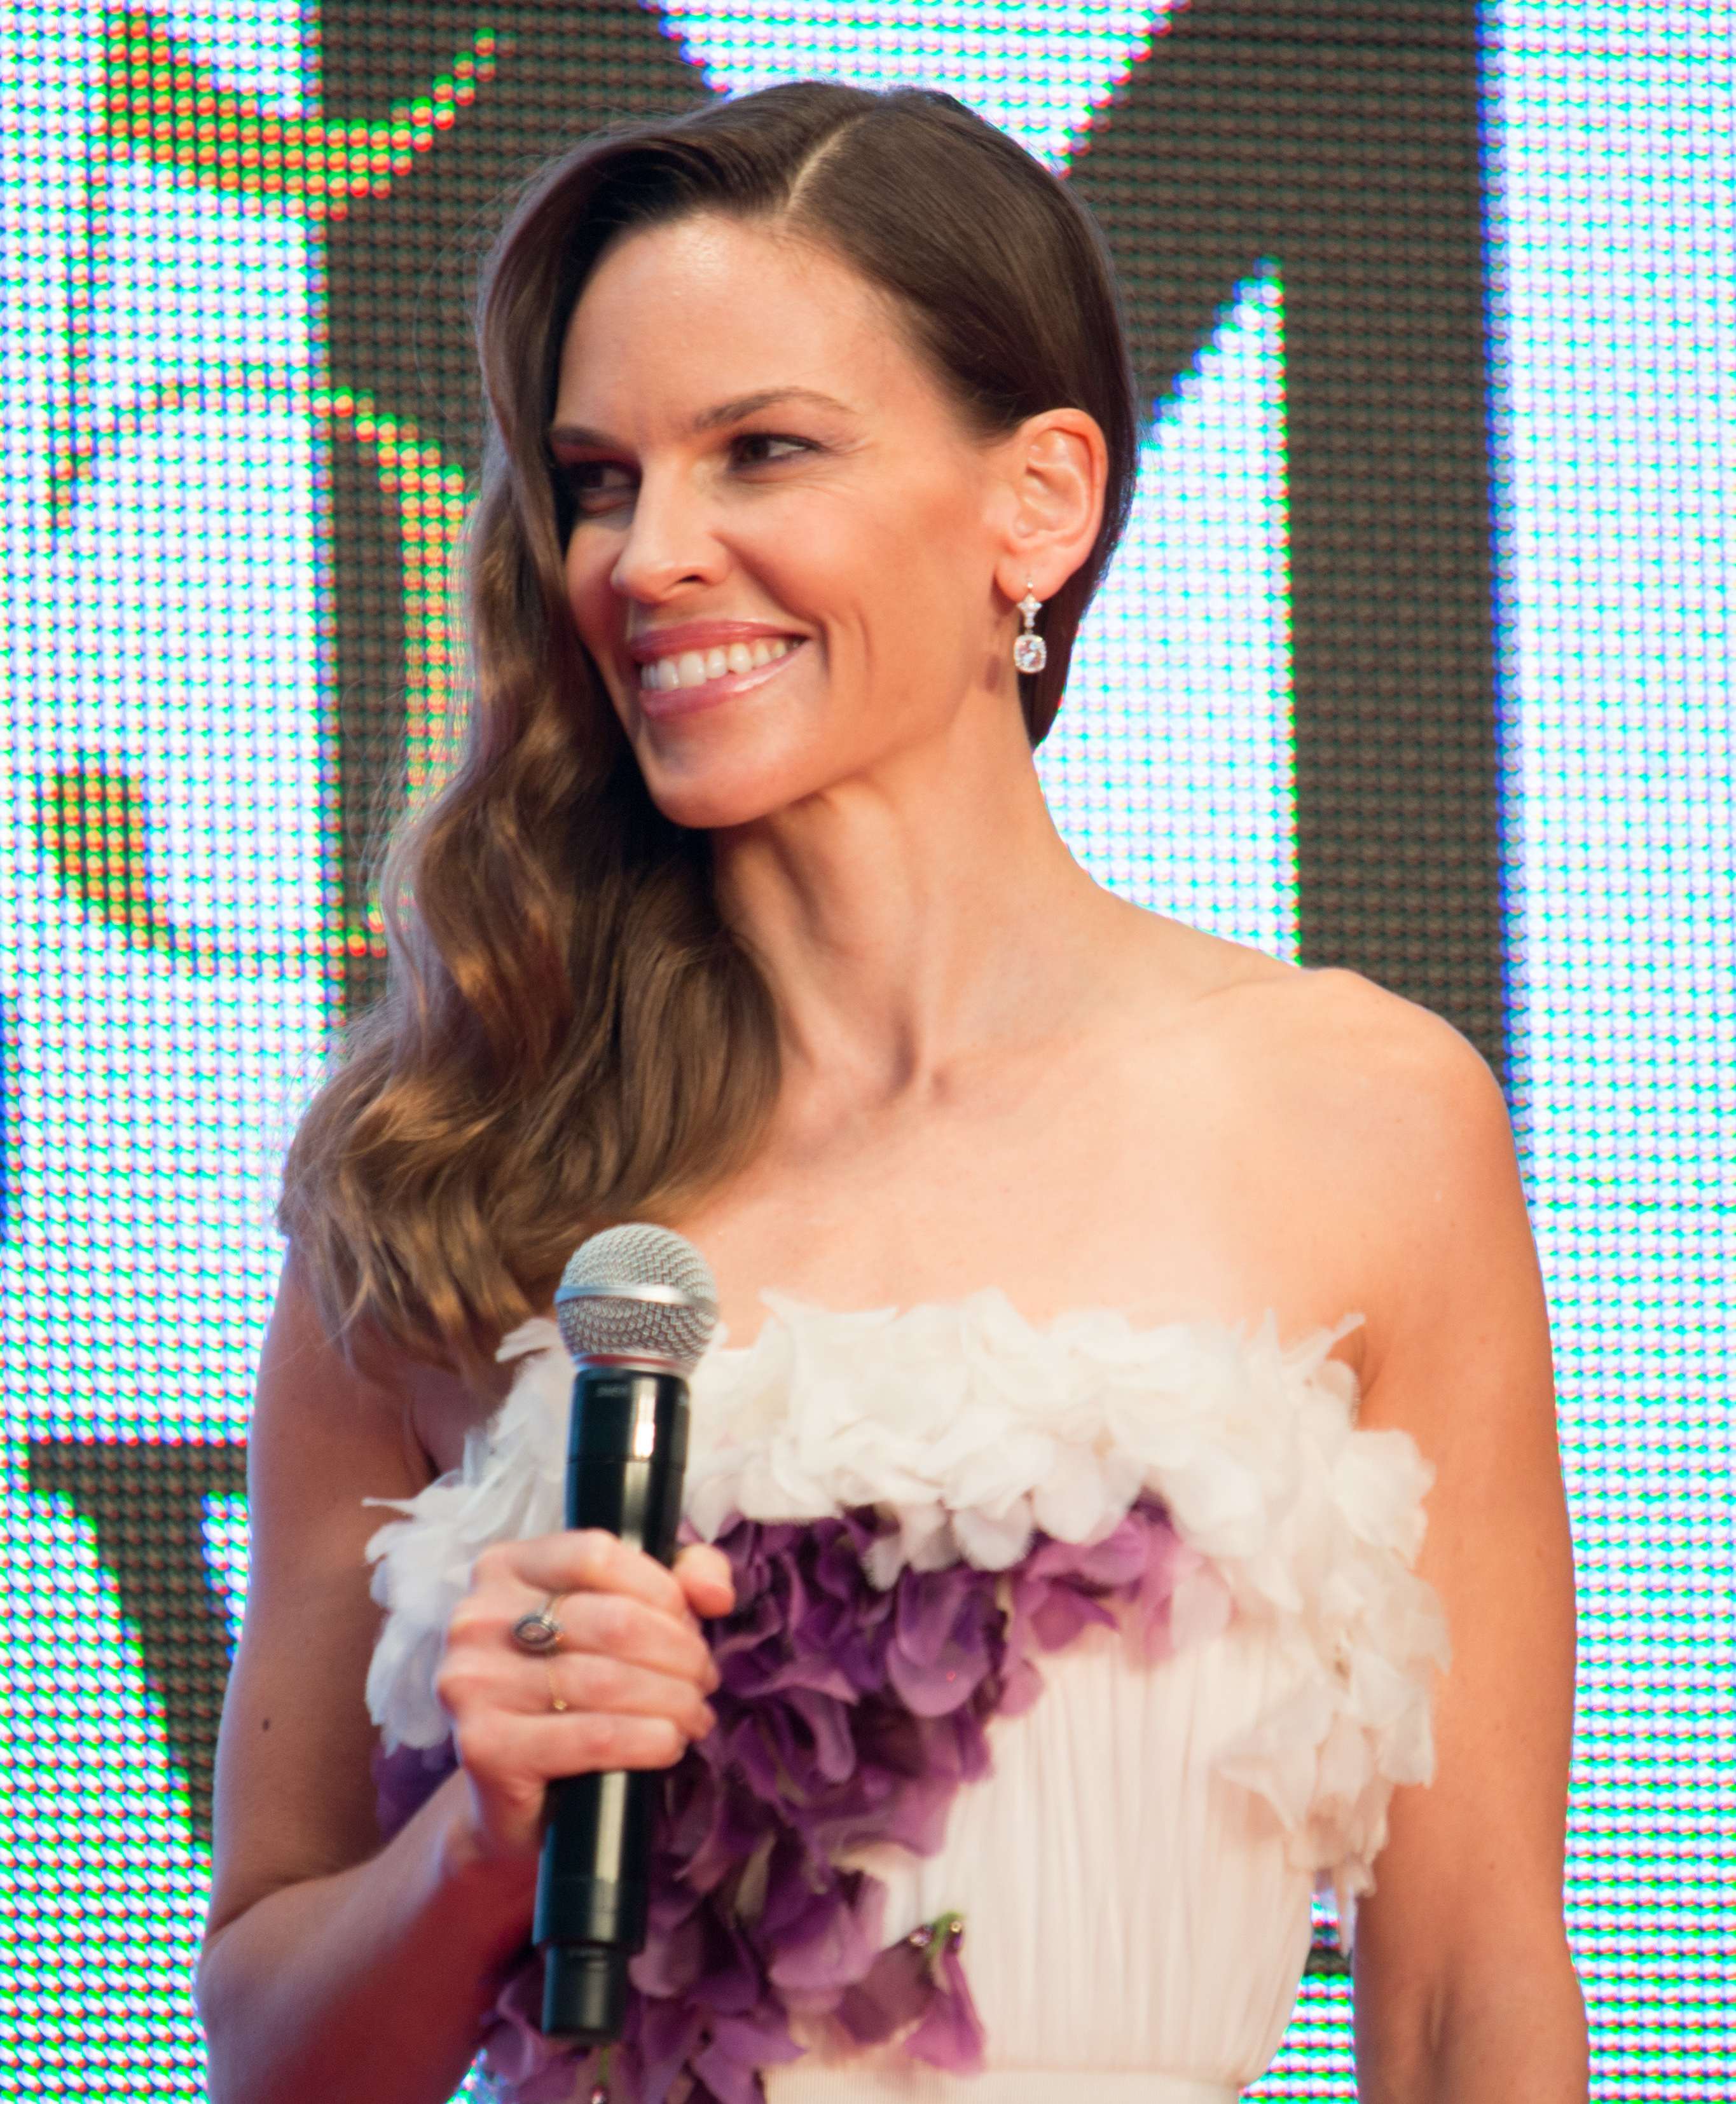 The 44-year old daughter of father Stephen Michael Swank and mother Judy Kay Clough Hilary Swank in 2018 photo. Hilary Swank earned a  million dollar salary - leaving the net worth at 40 million in 2018